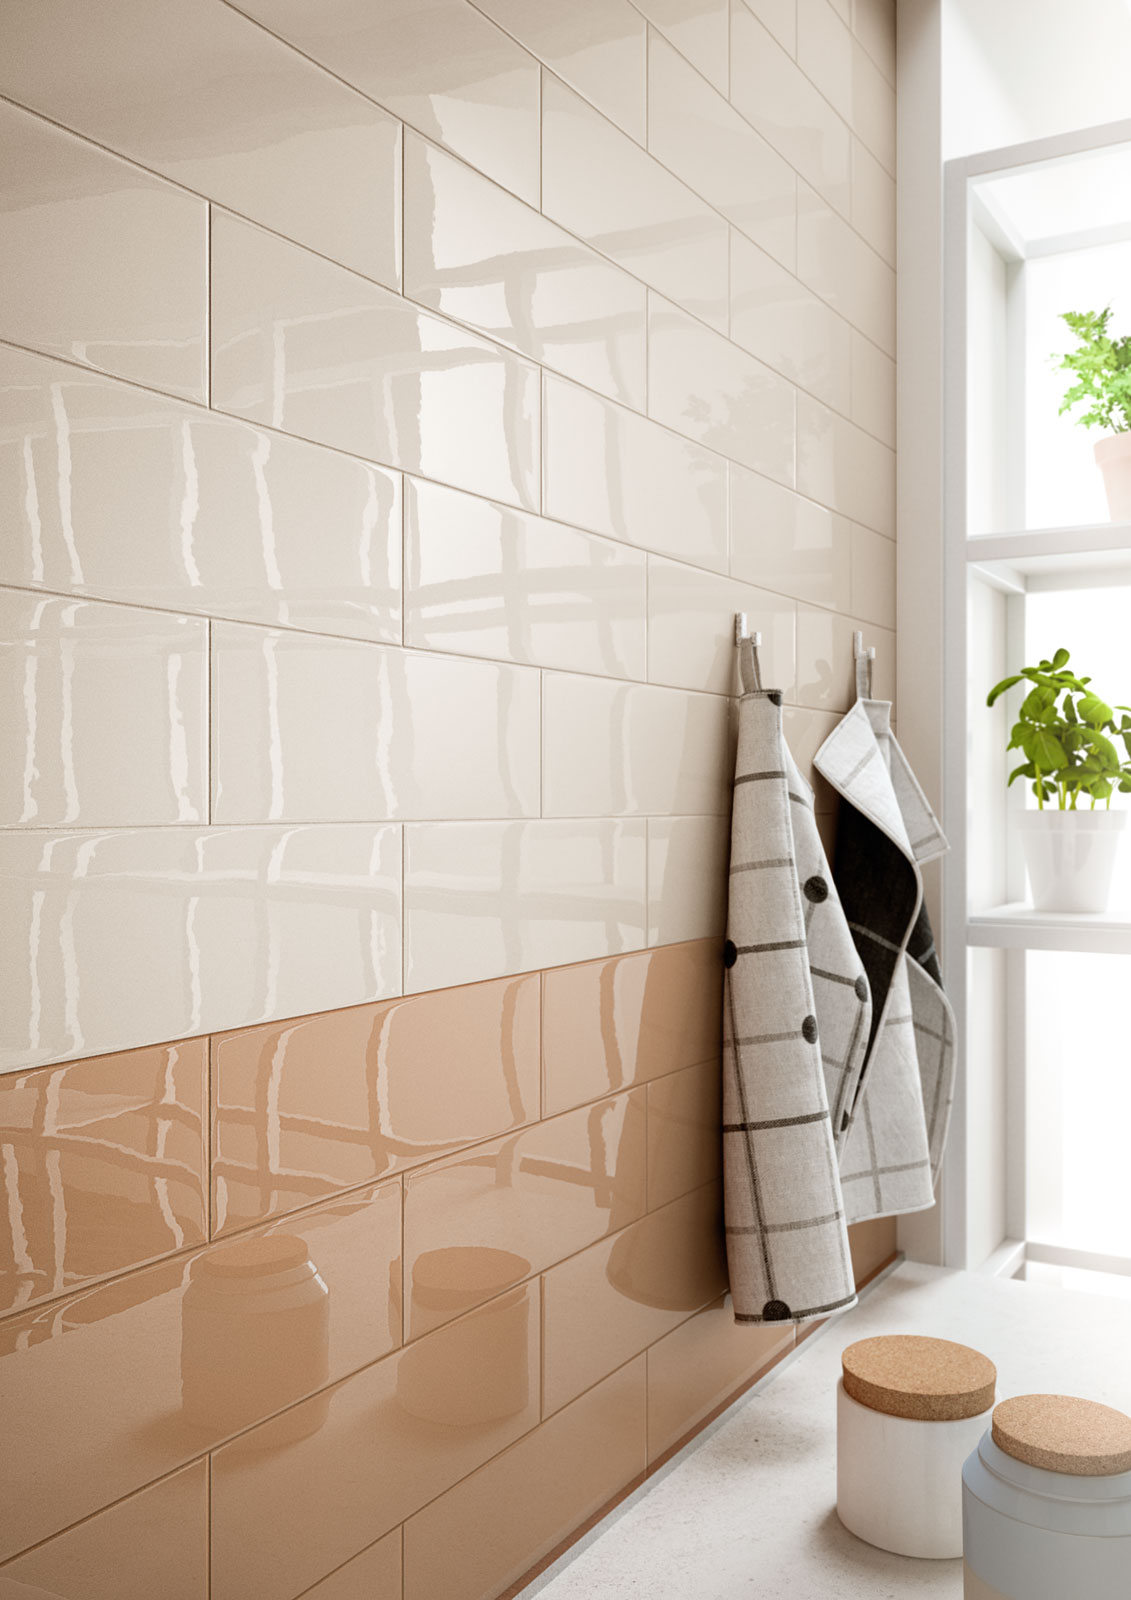 Mellow wall covering ceramic tiles marazzi mellow ceramic tiles marazzi6897 dailygadgetfo Images